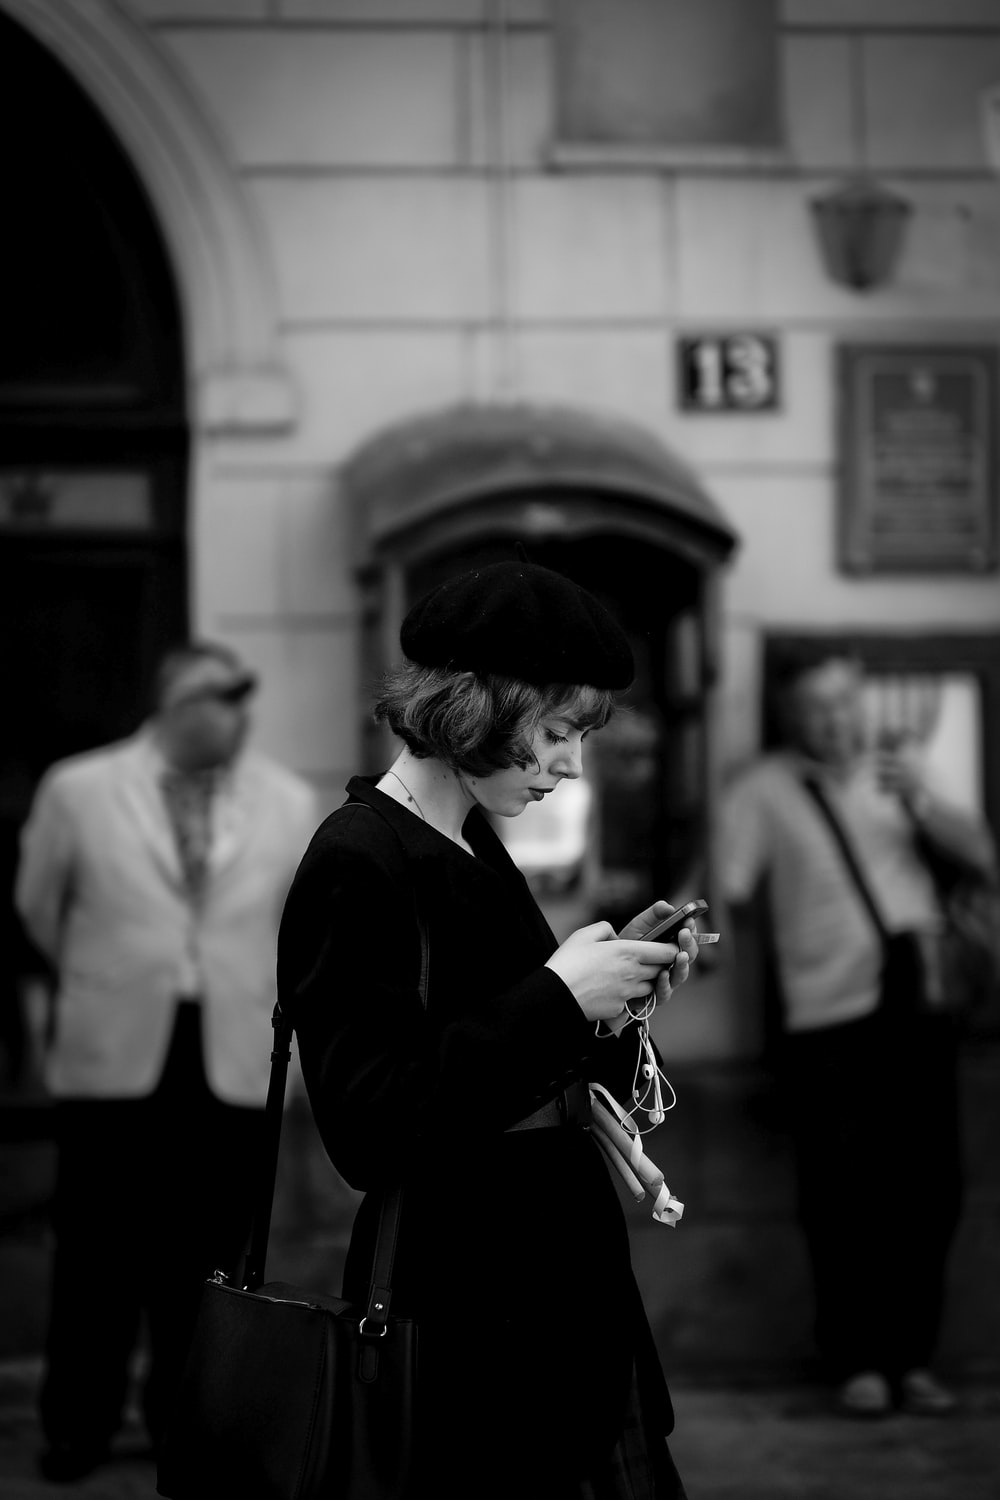 grayscale photo of woman using smartphone